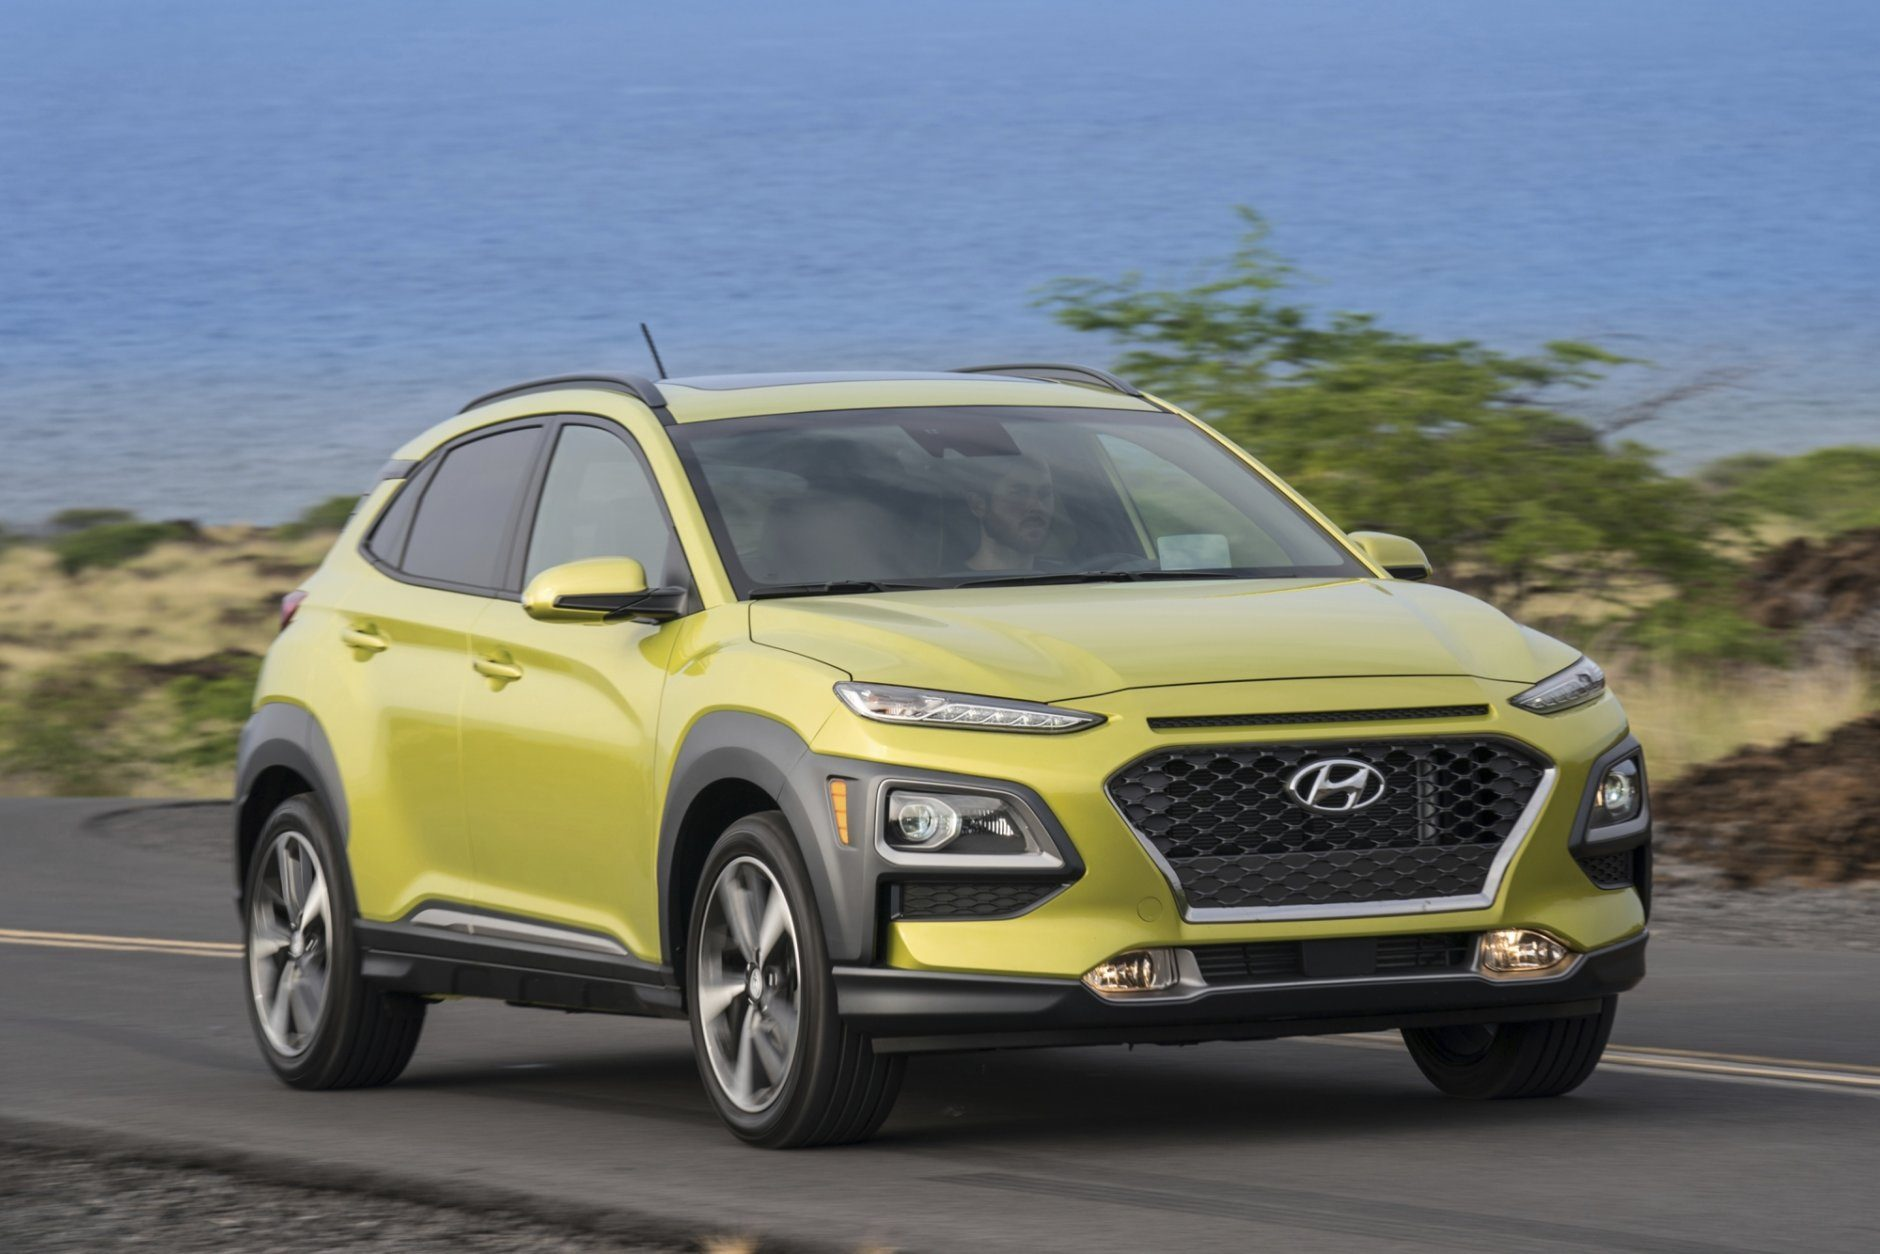 "<p>Hyundai is offering 0% financing for 60 months on the <a href=""https://cars.usnews.com/cars-trucks/hyundai/kona?utm_source=press&amp;utm_medium=releaselinks&amp;utm_campaign=deals"" target=""_blank"" rel=""noopener"">2019 Hyundai Kona</a>.</p>"